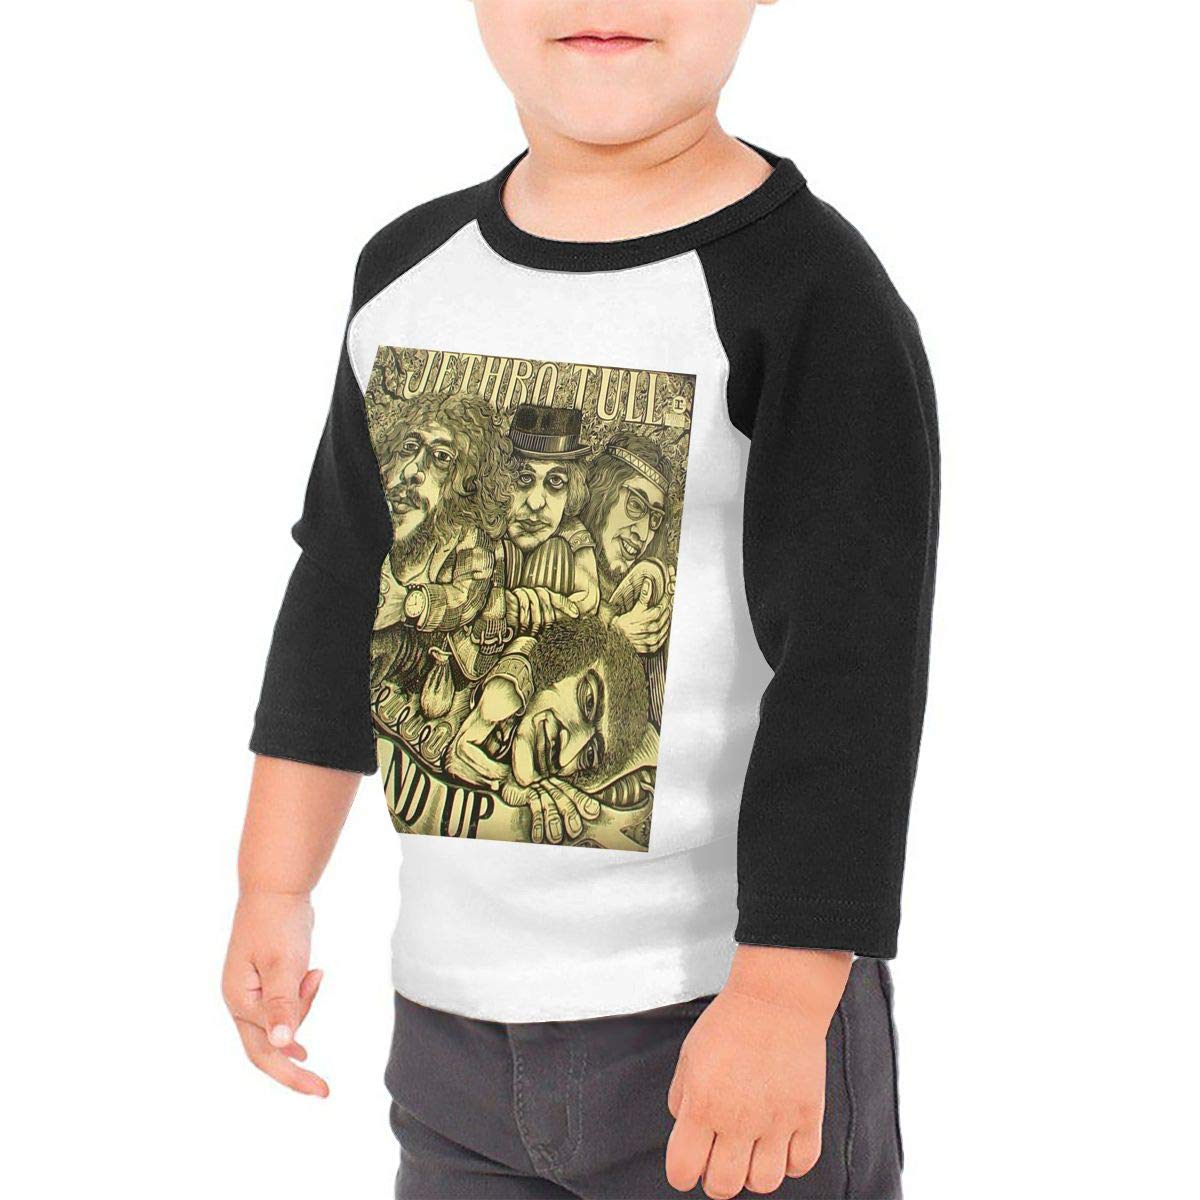 Black6Red Stand Up Childrens 3//4 Sleeve T-Shirt